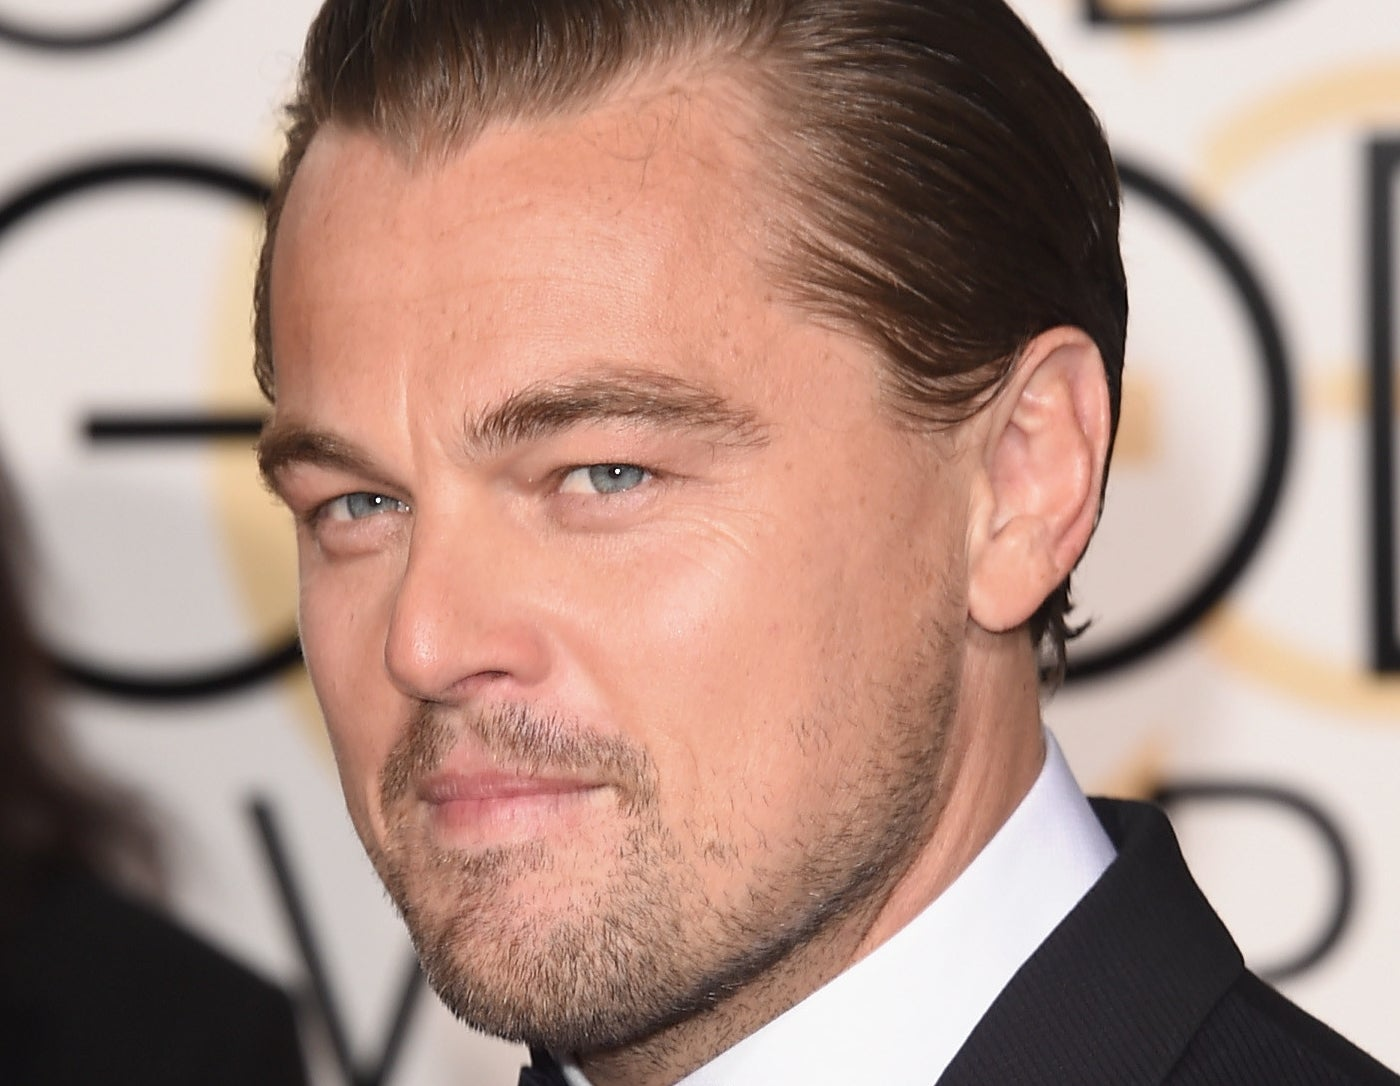 """Leonardo DiCaprio at the 2016 Golden Globes, where he shared his award win with """"all the indigenous communities around the world."""""""